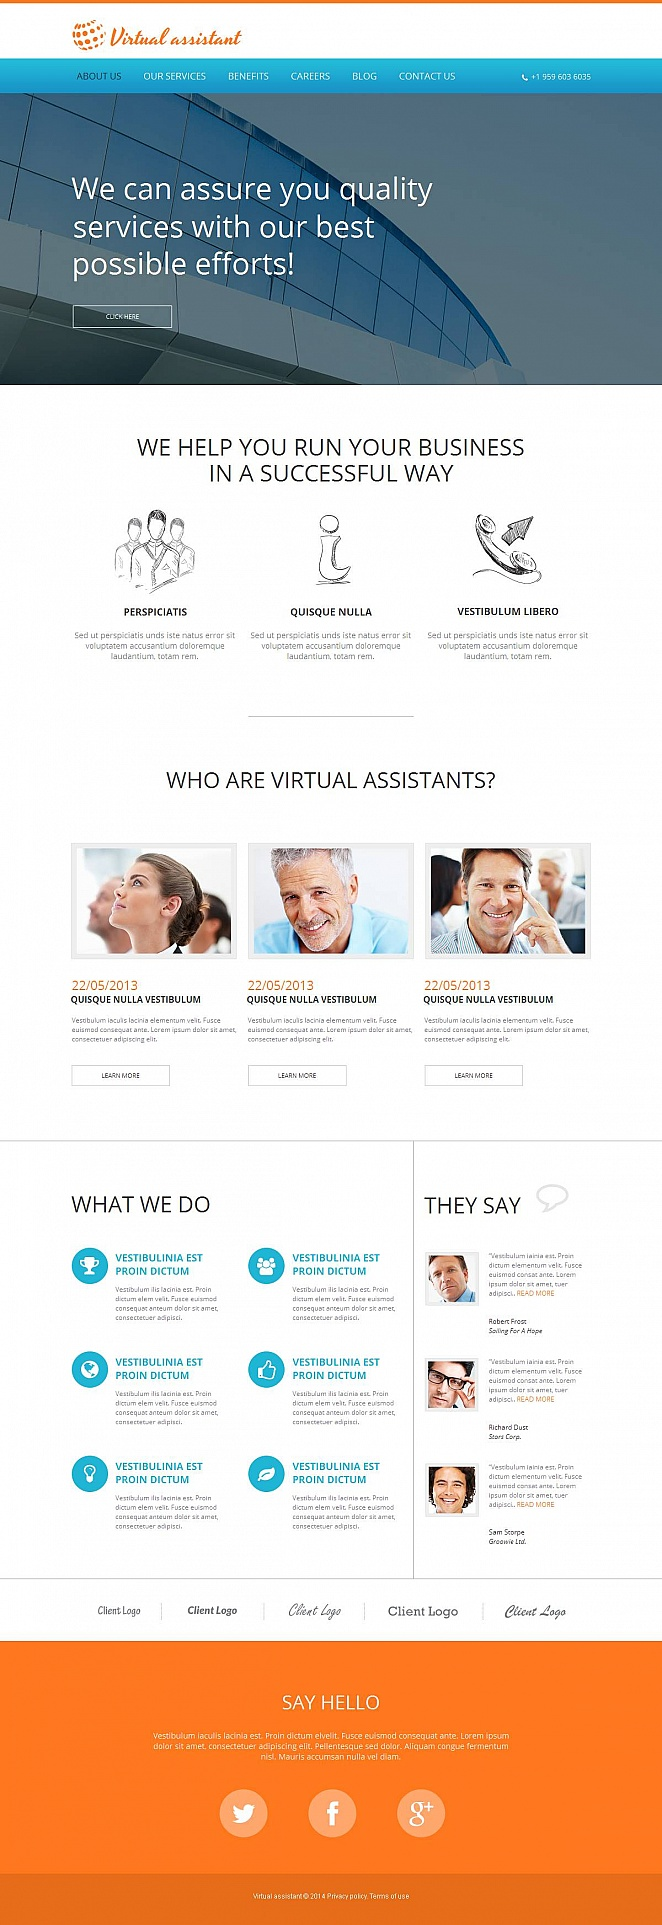 Online Business Consulting Website Template - image